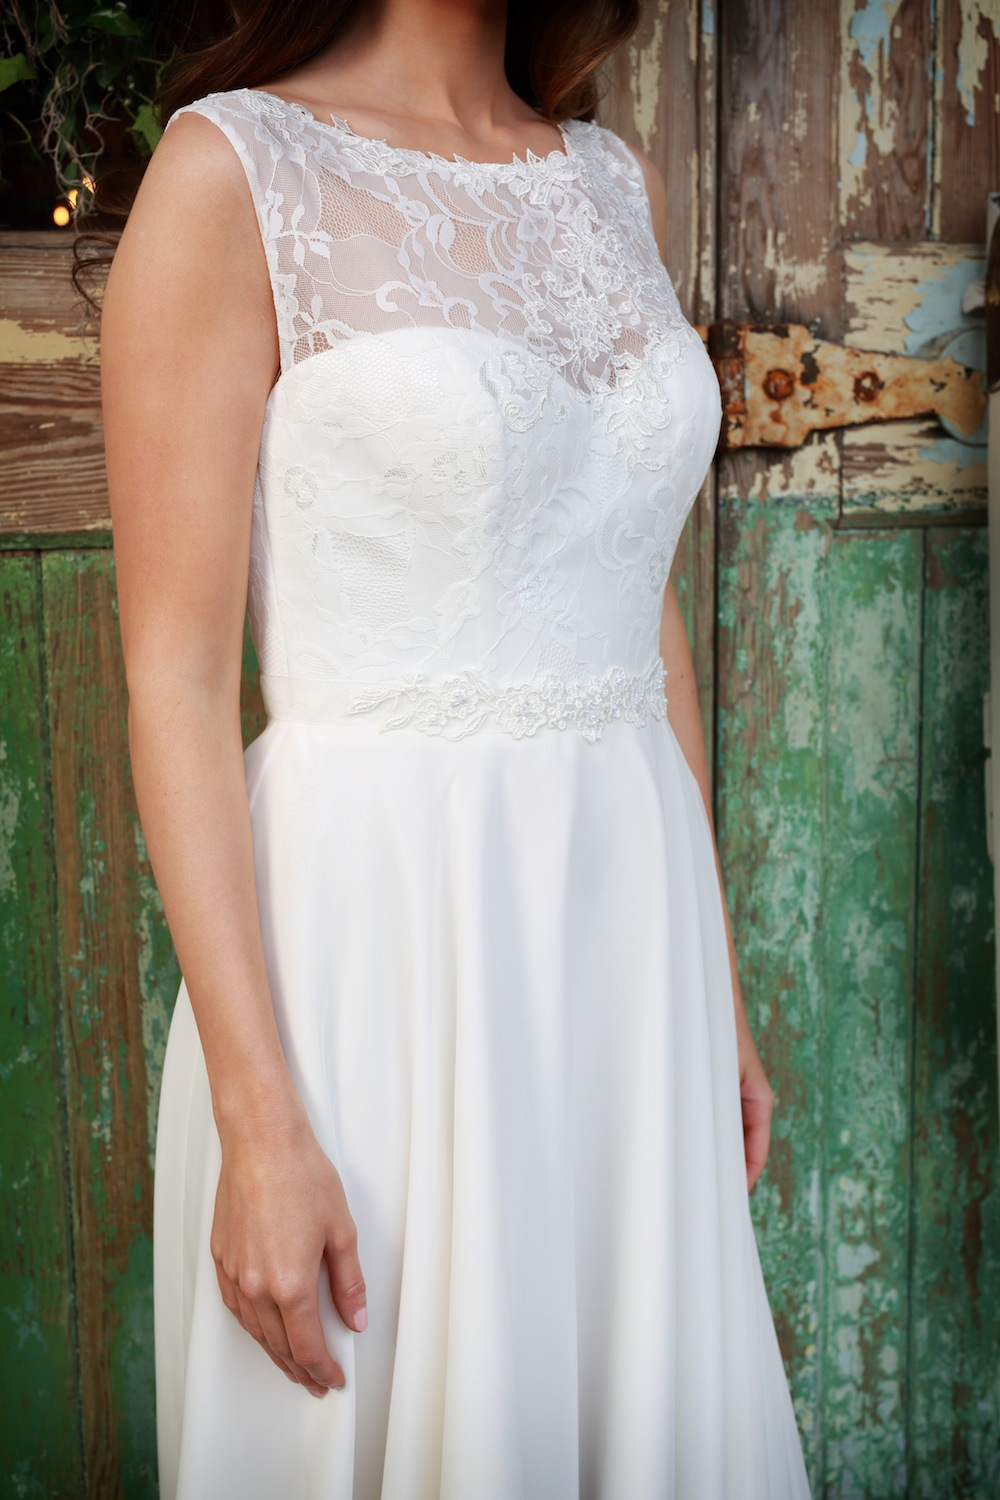 Amanda Wyatt Wedding Gown : Tamsin - luxurious chiffon gown with over 12 yards of fabric in the skirt and a soft lace bodice overlaid with cotton lace motifs.